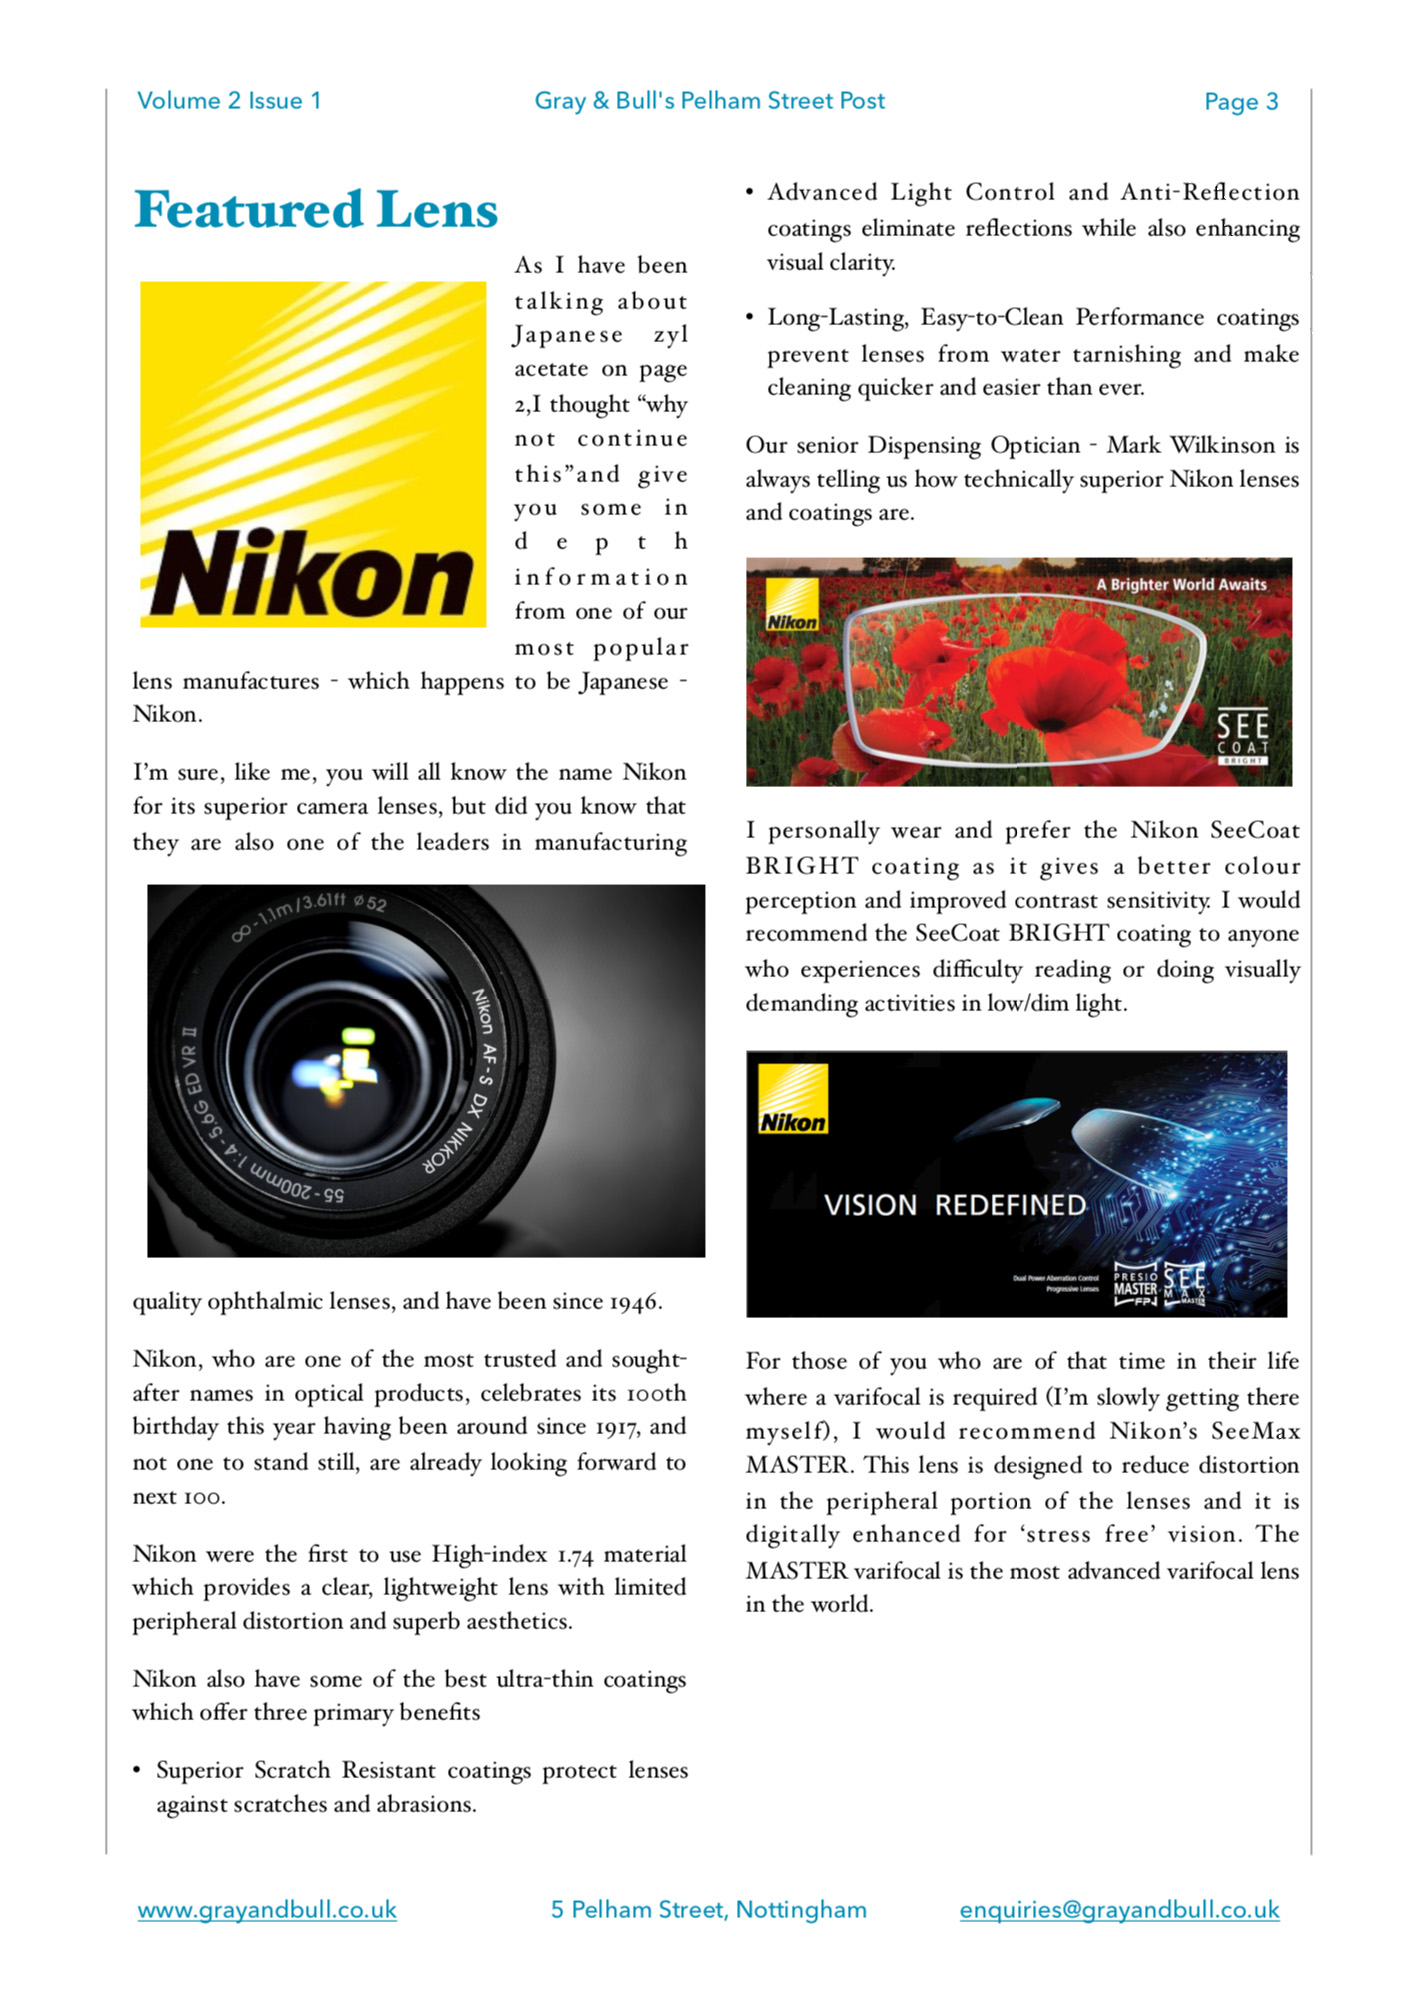 Nikon Lenswear Featured Lens Pelham Street Post